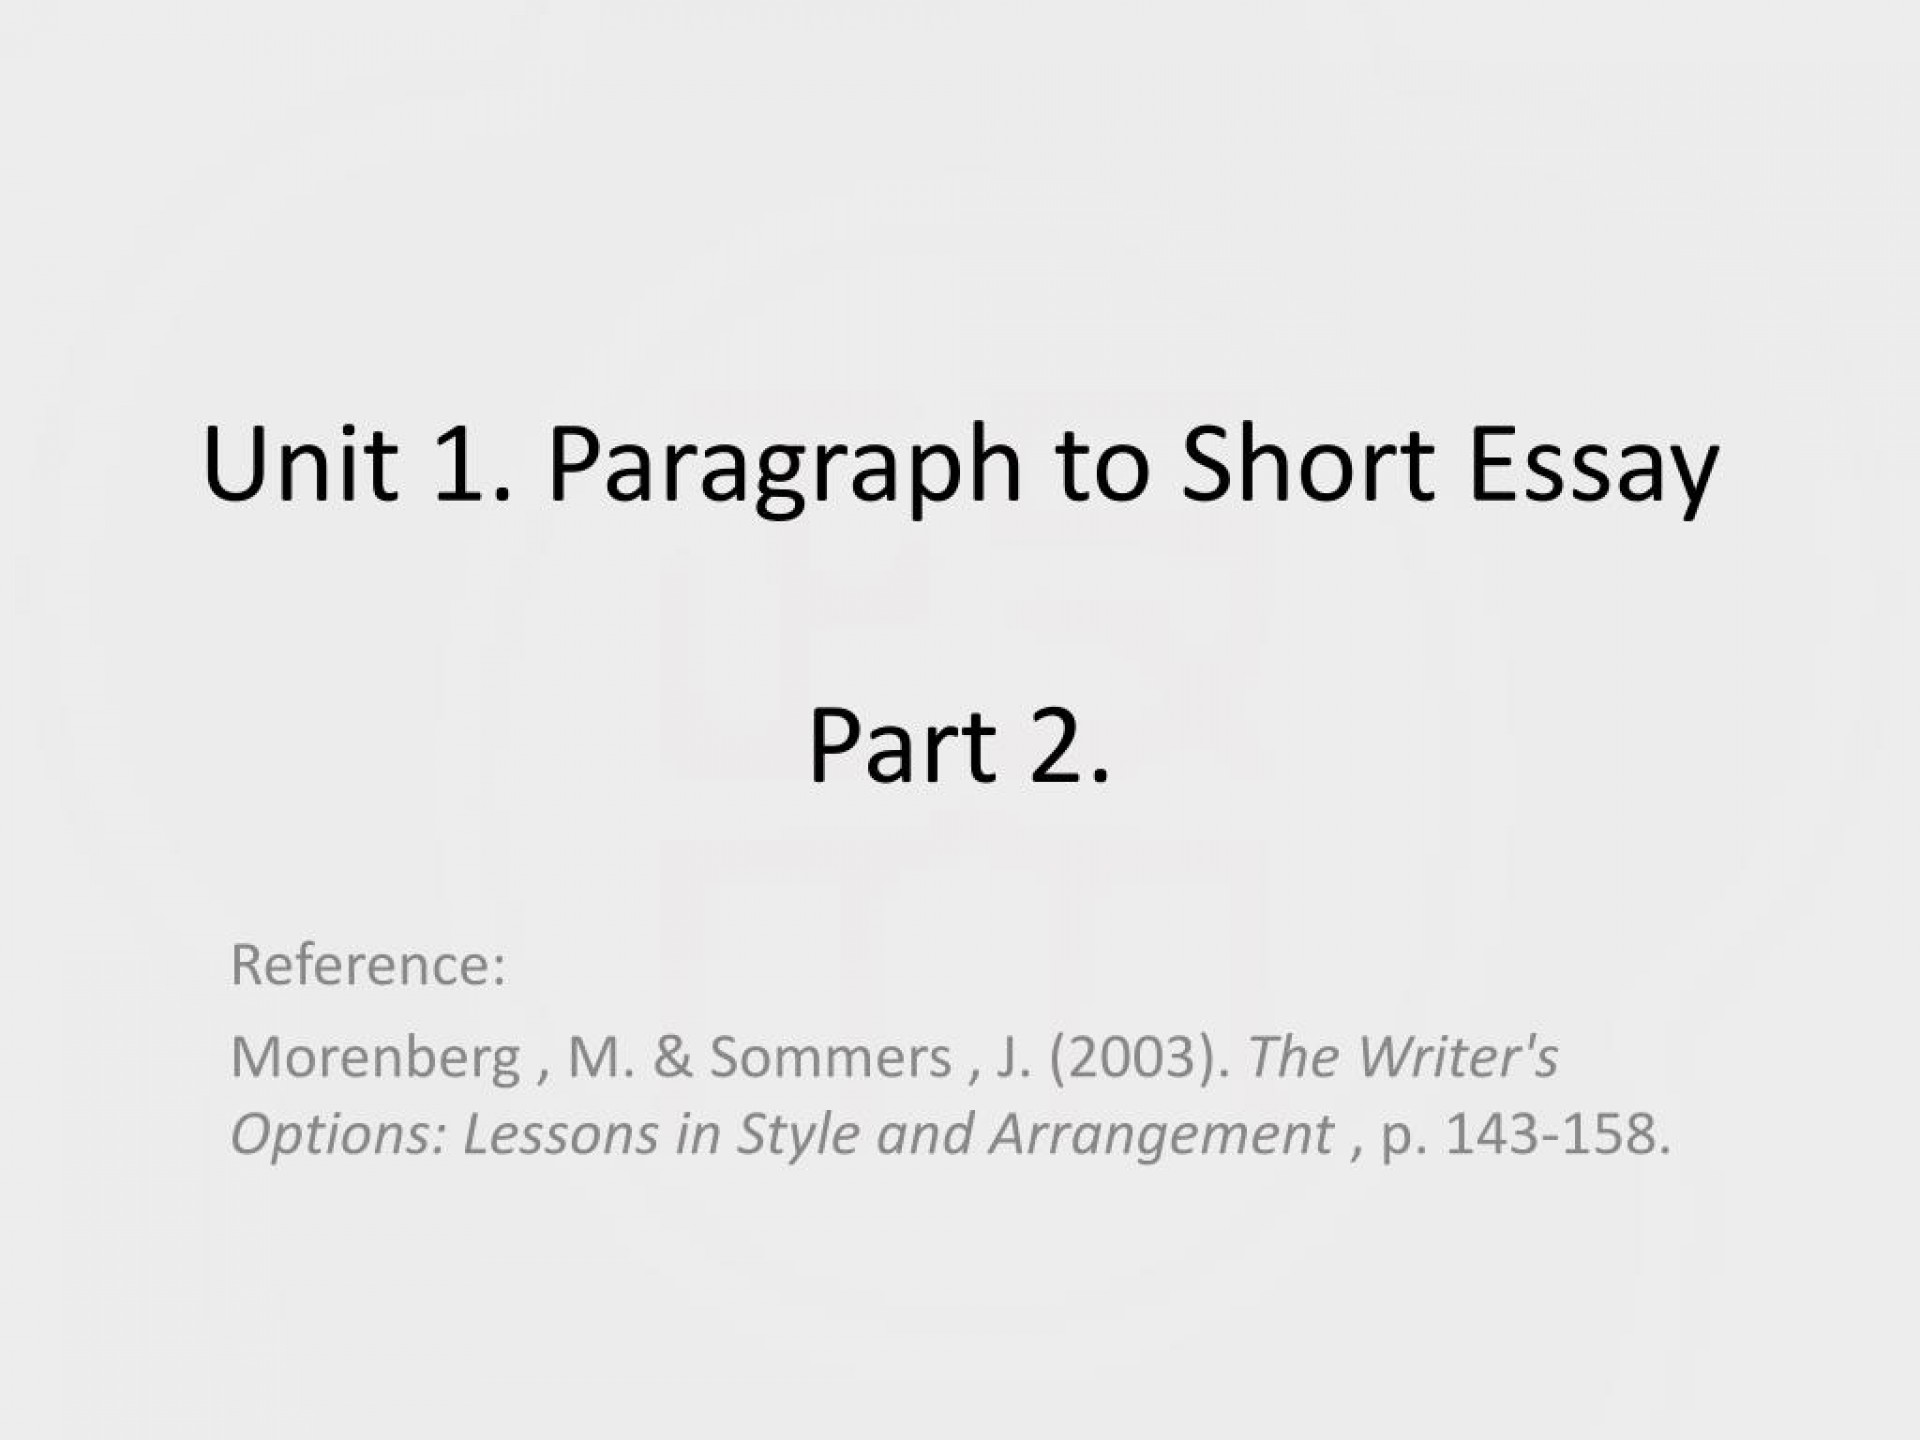 015 Paragraph Essay Unit To Short Part L Magnificent 2 Topics About Friendship Graphic Organizer 1920